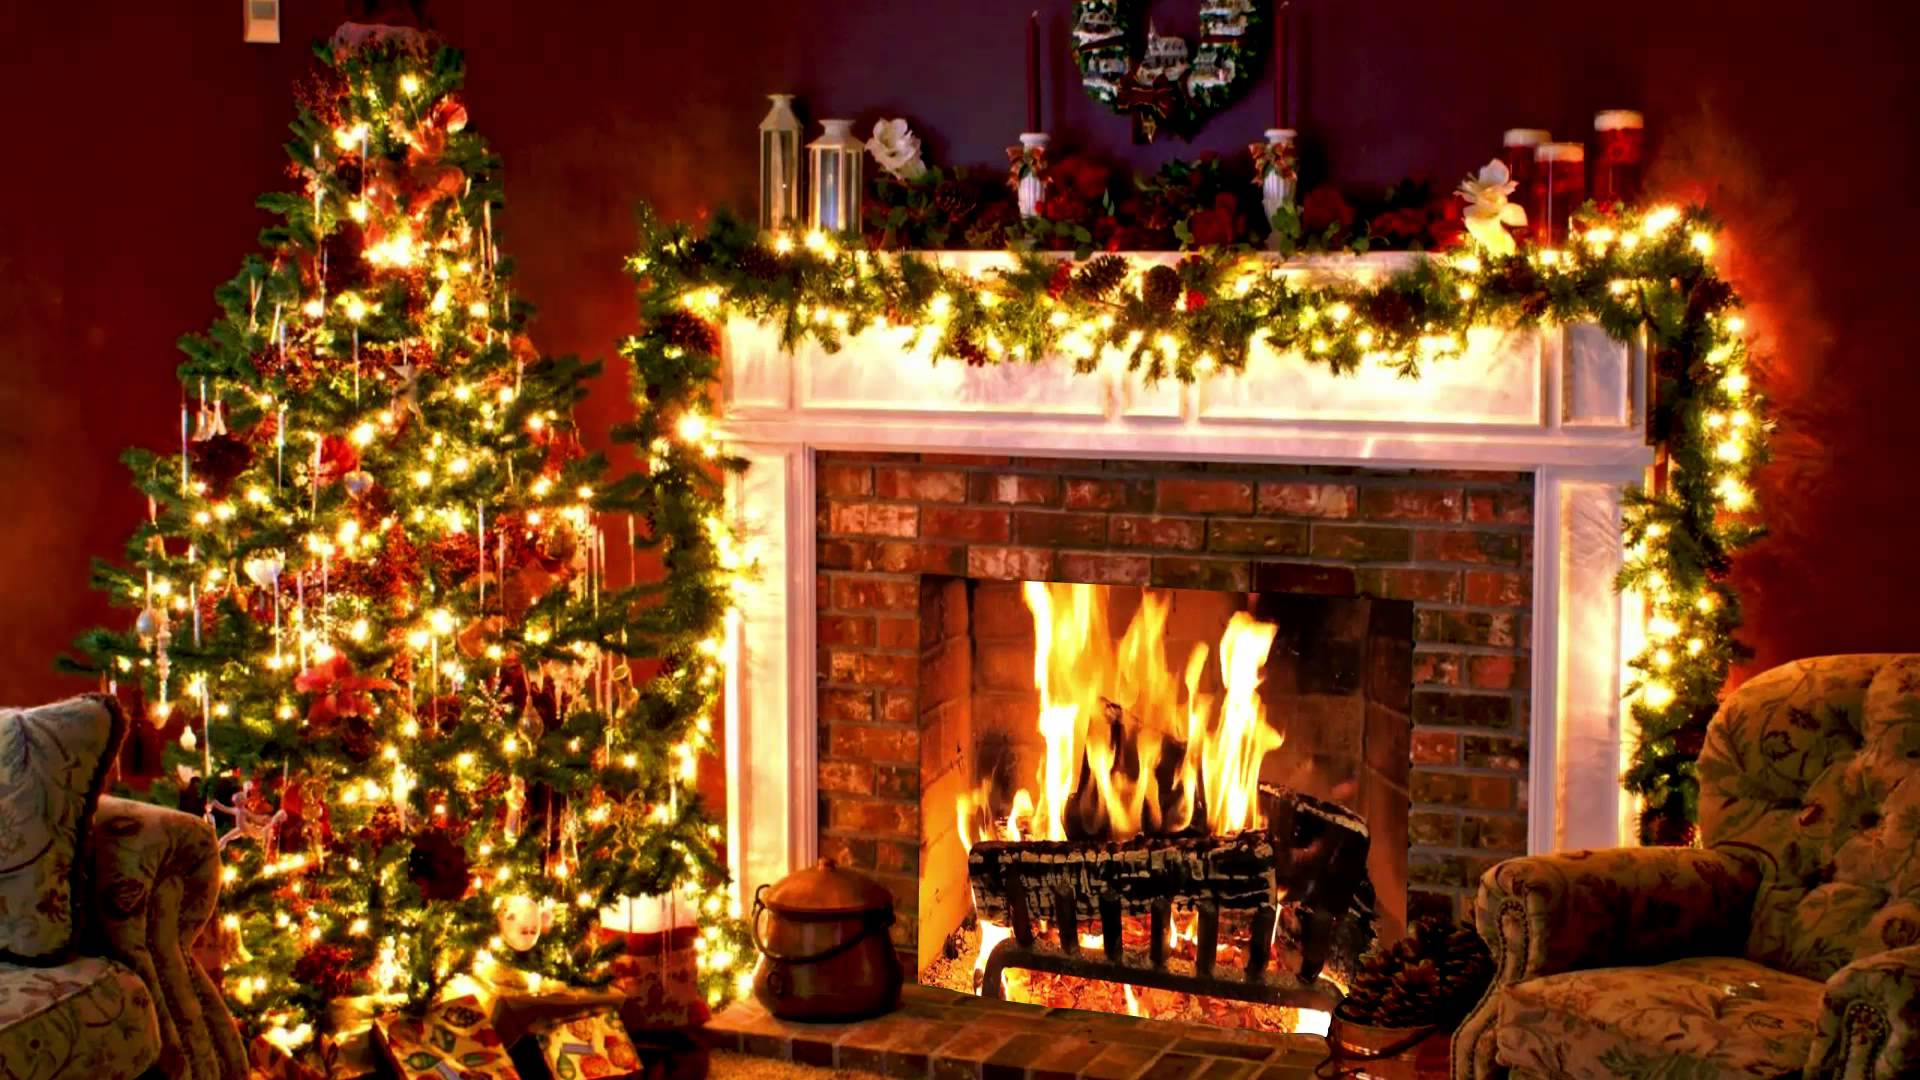 Home for Christmas HD Wallpaper  Background Image  1920x1080  ID752456  Wallpaper Abyss